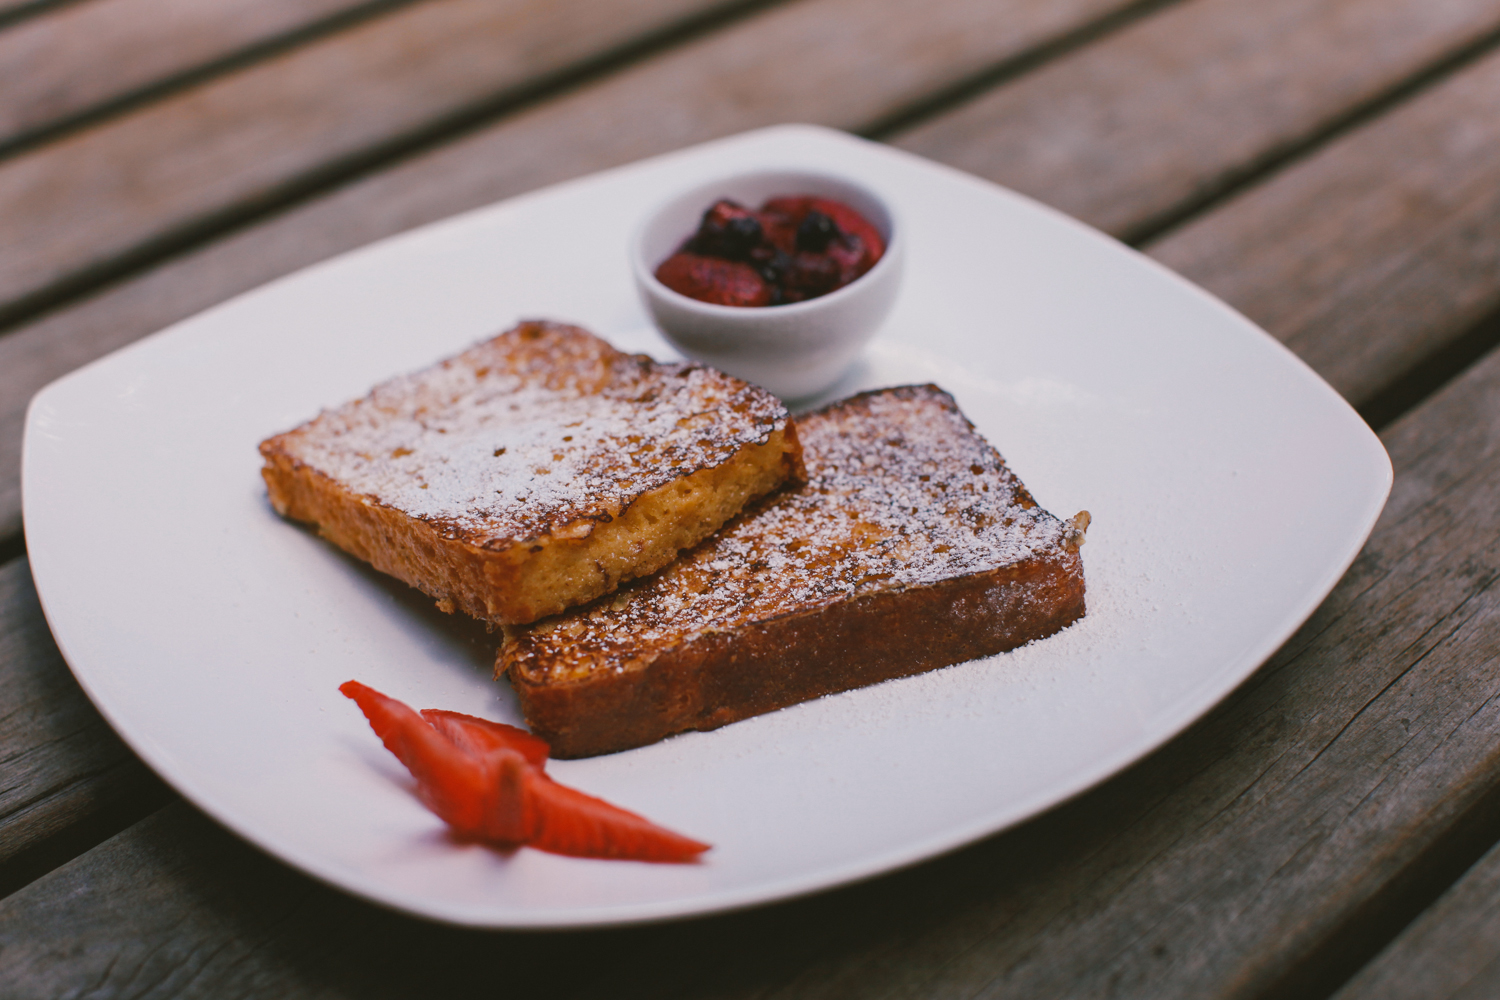 French toast, yet another breakfast option.